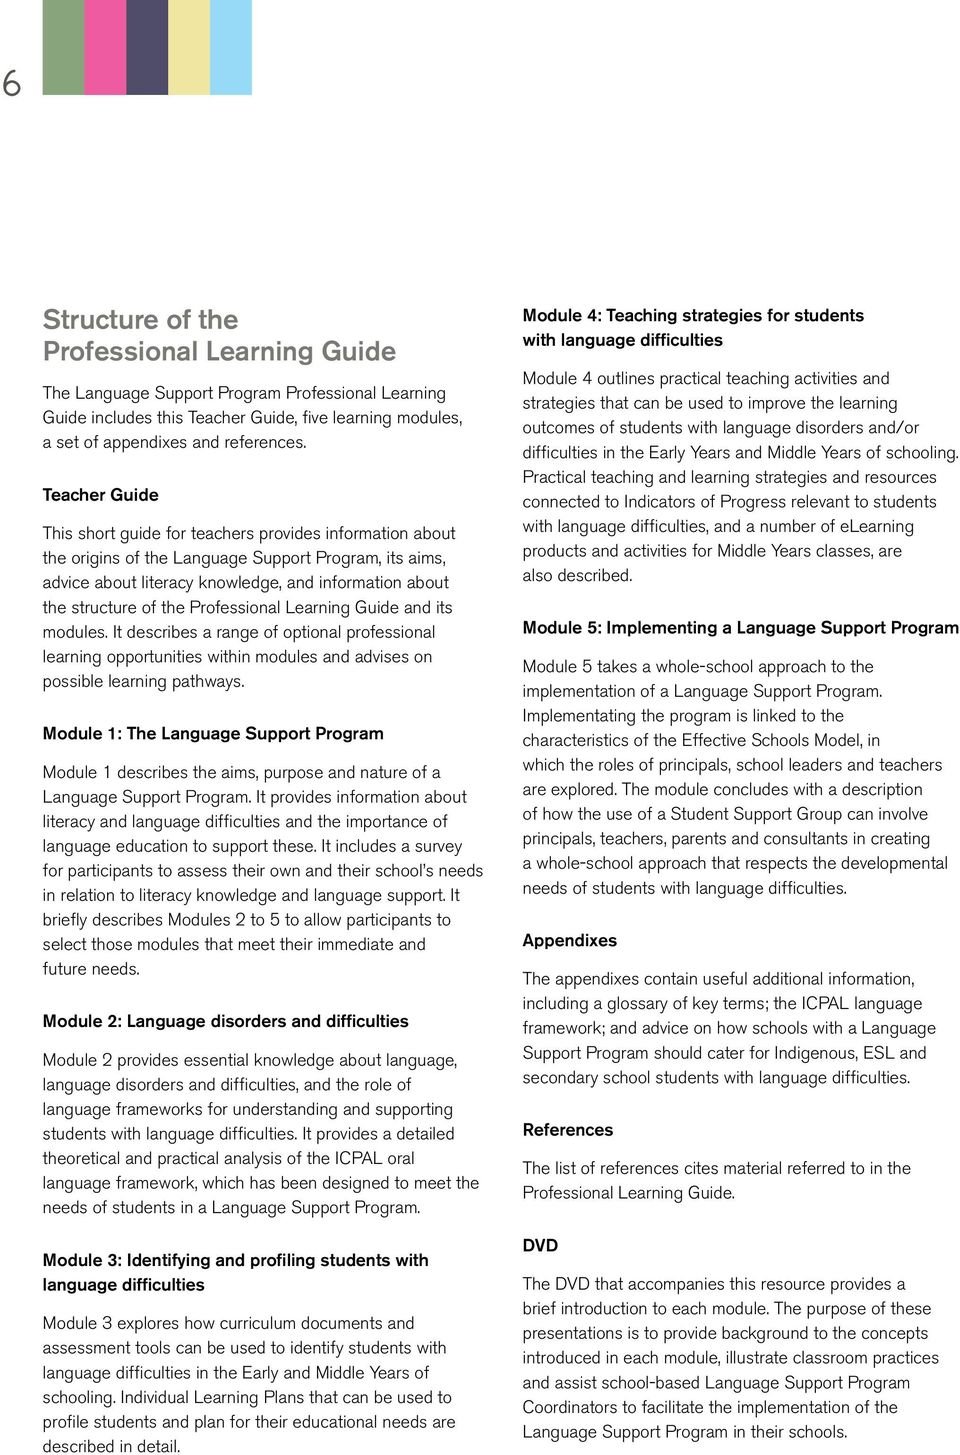 the Professional Learning Guide and its modules. It describes a range of optional professional learning opportunities within modules and advises on possible learning pathways.